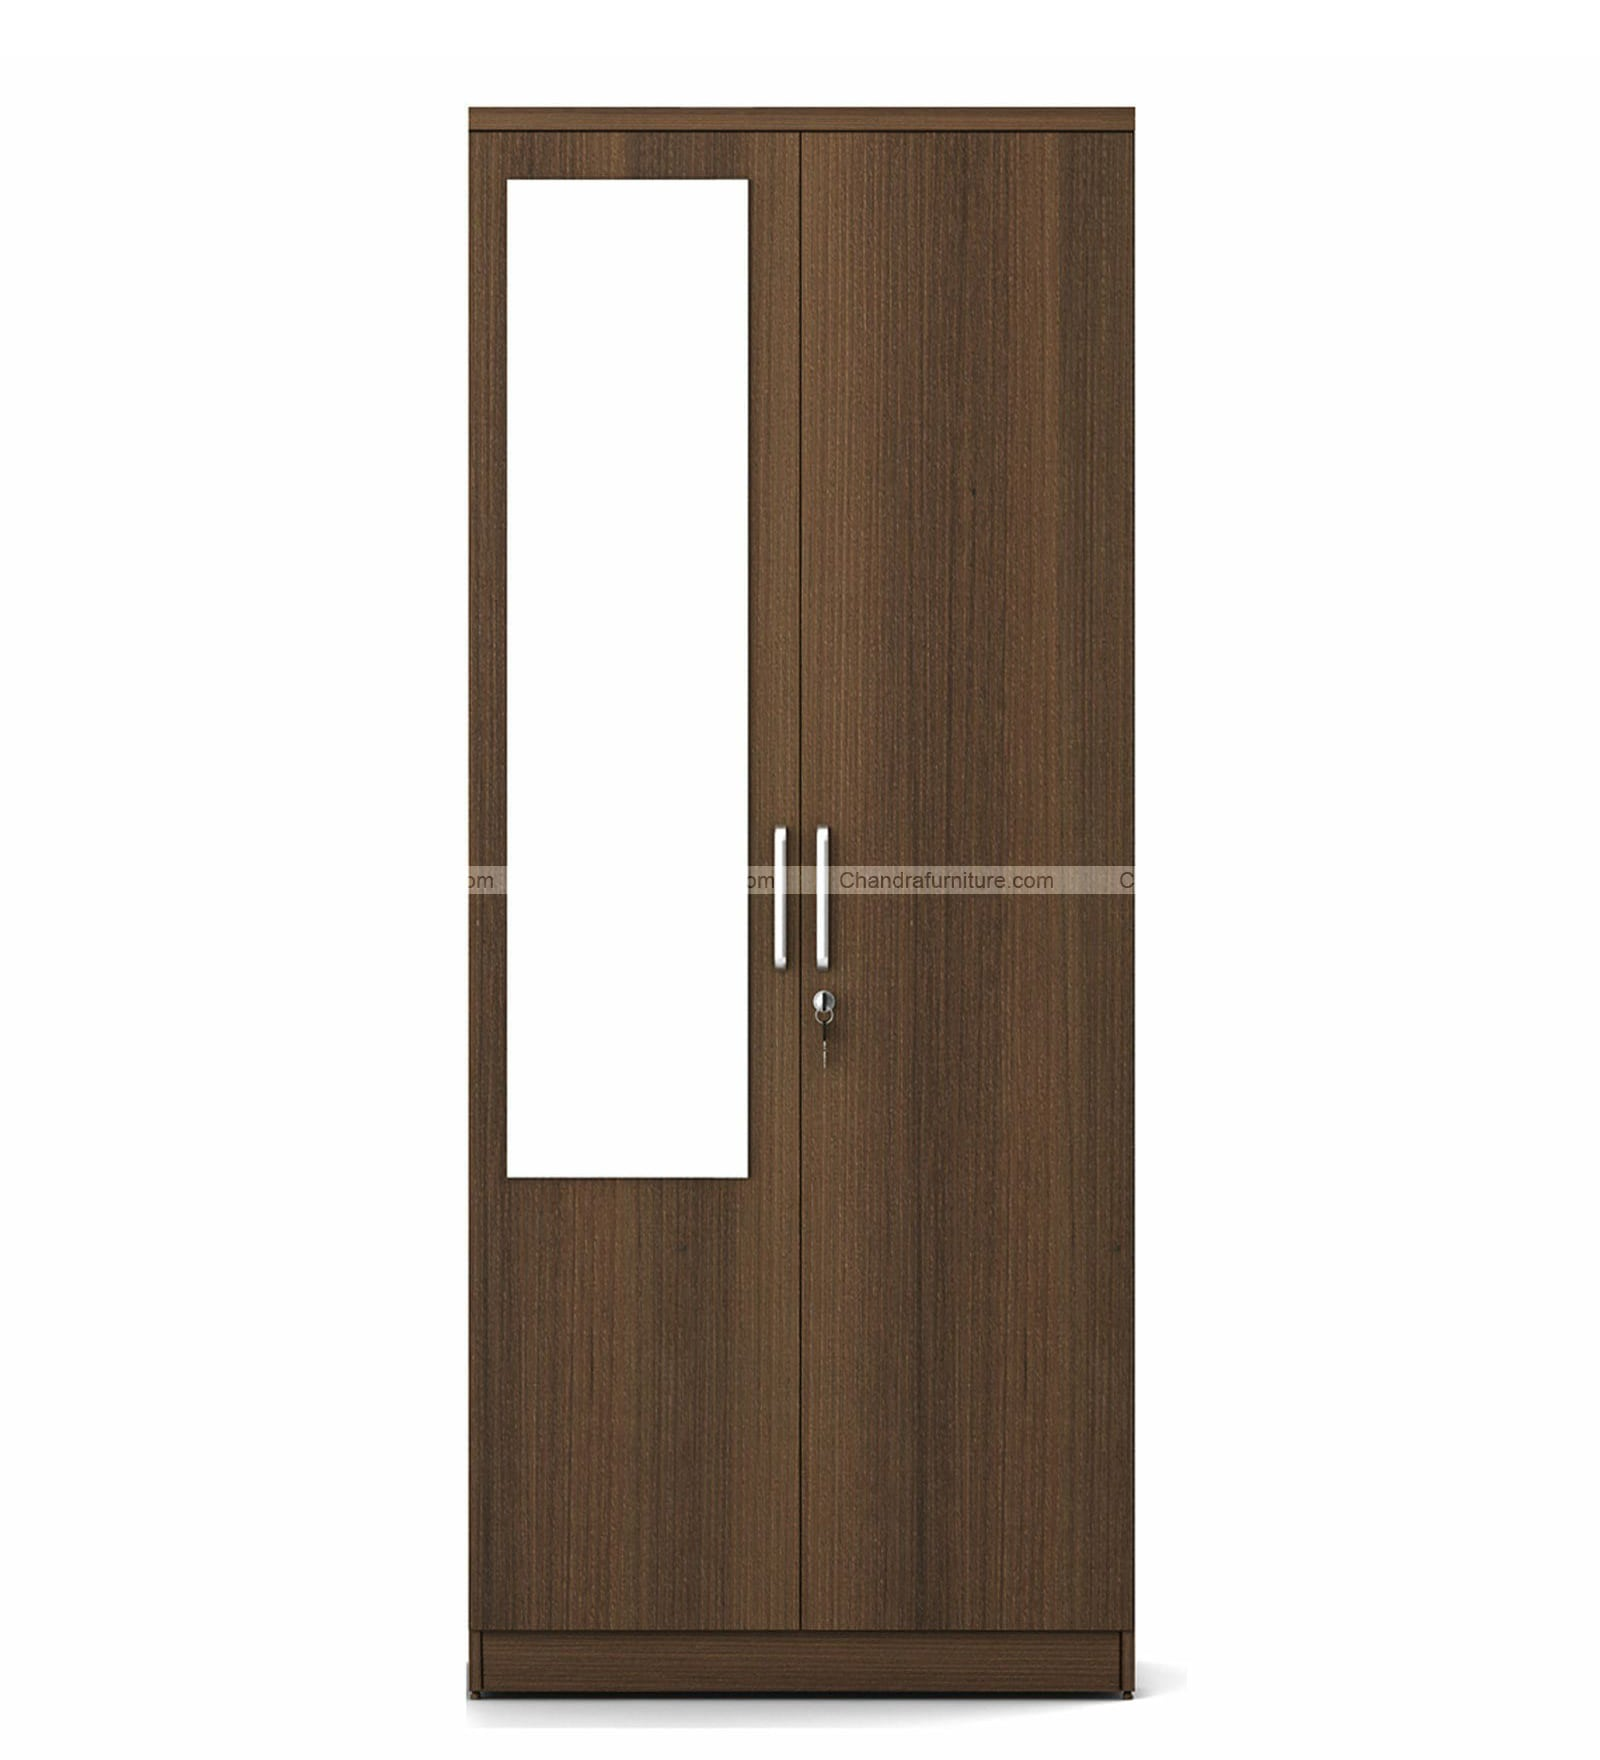 Chandra Furniture Stora Two Door Wardrobe With Mirror Wood Colour